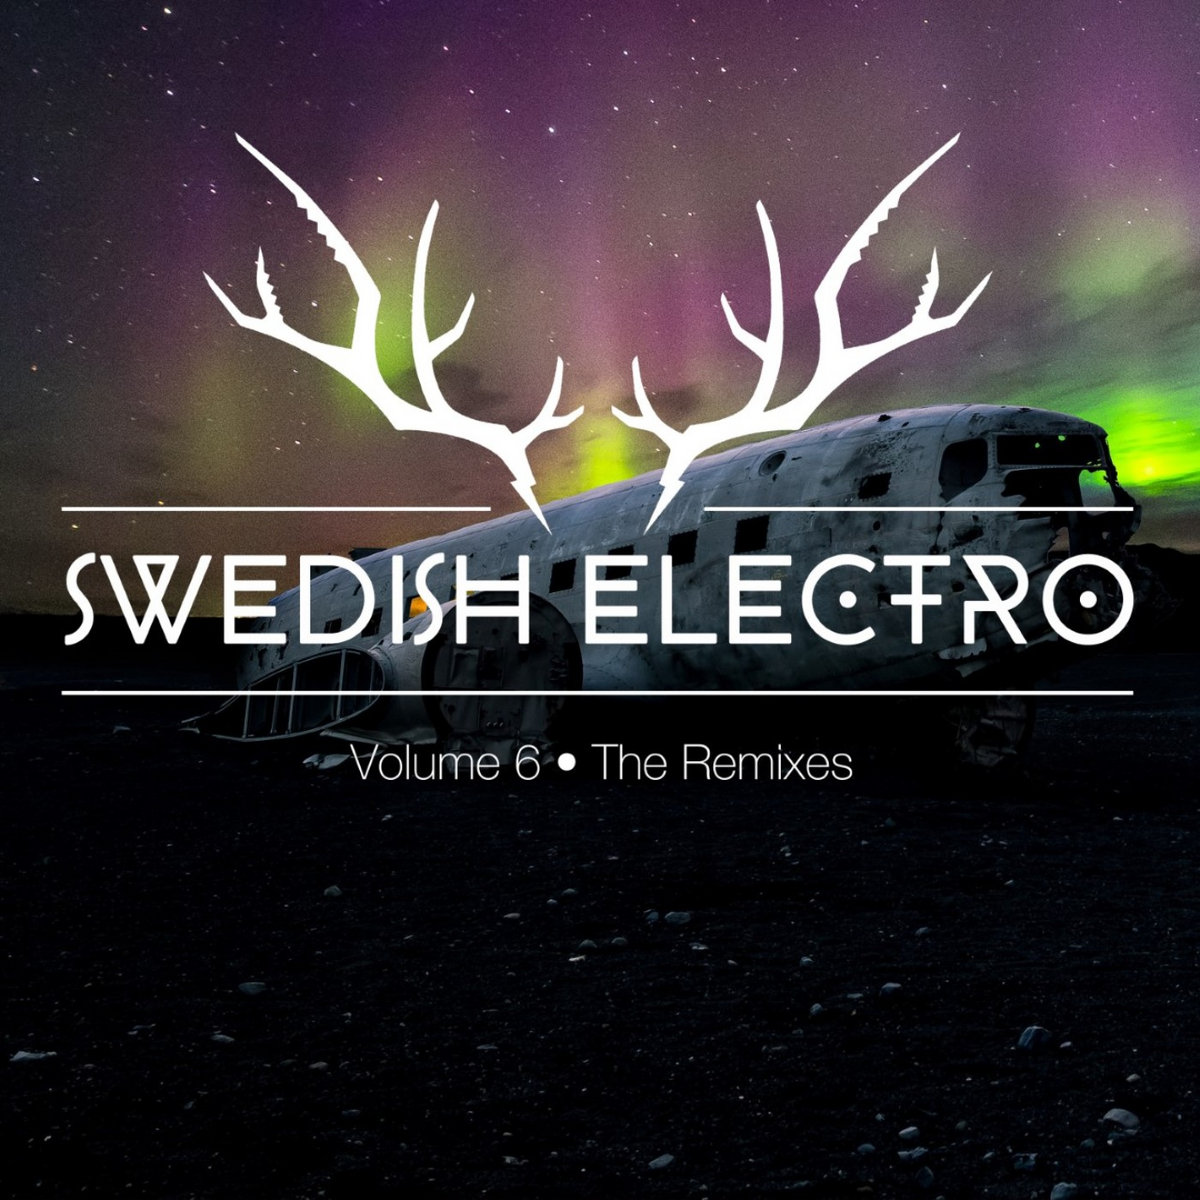 """Swedish Electro vol.6"" now available"